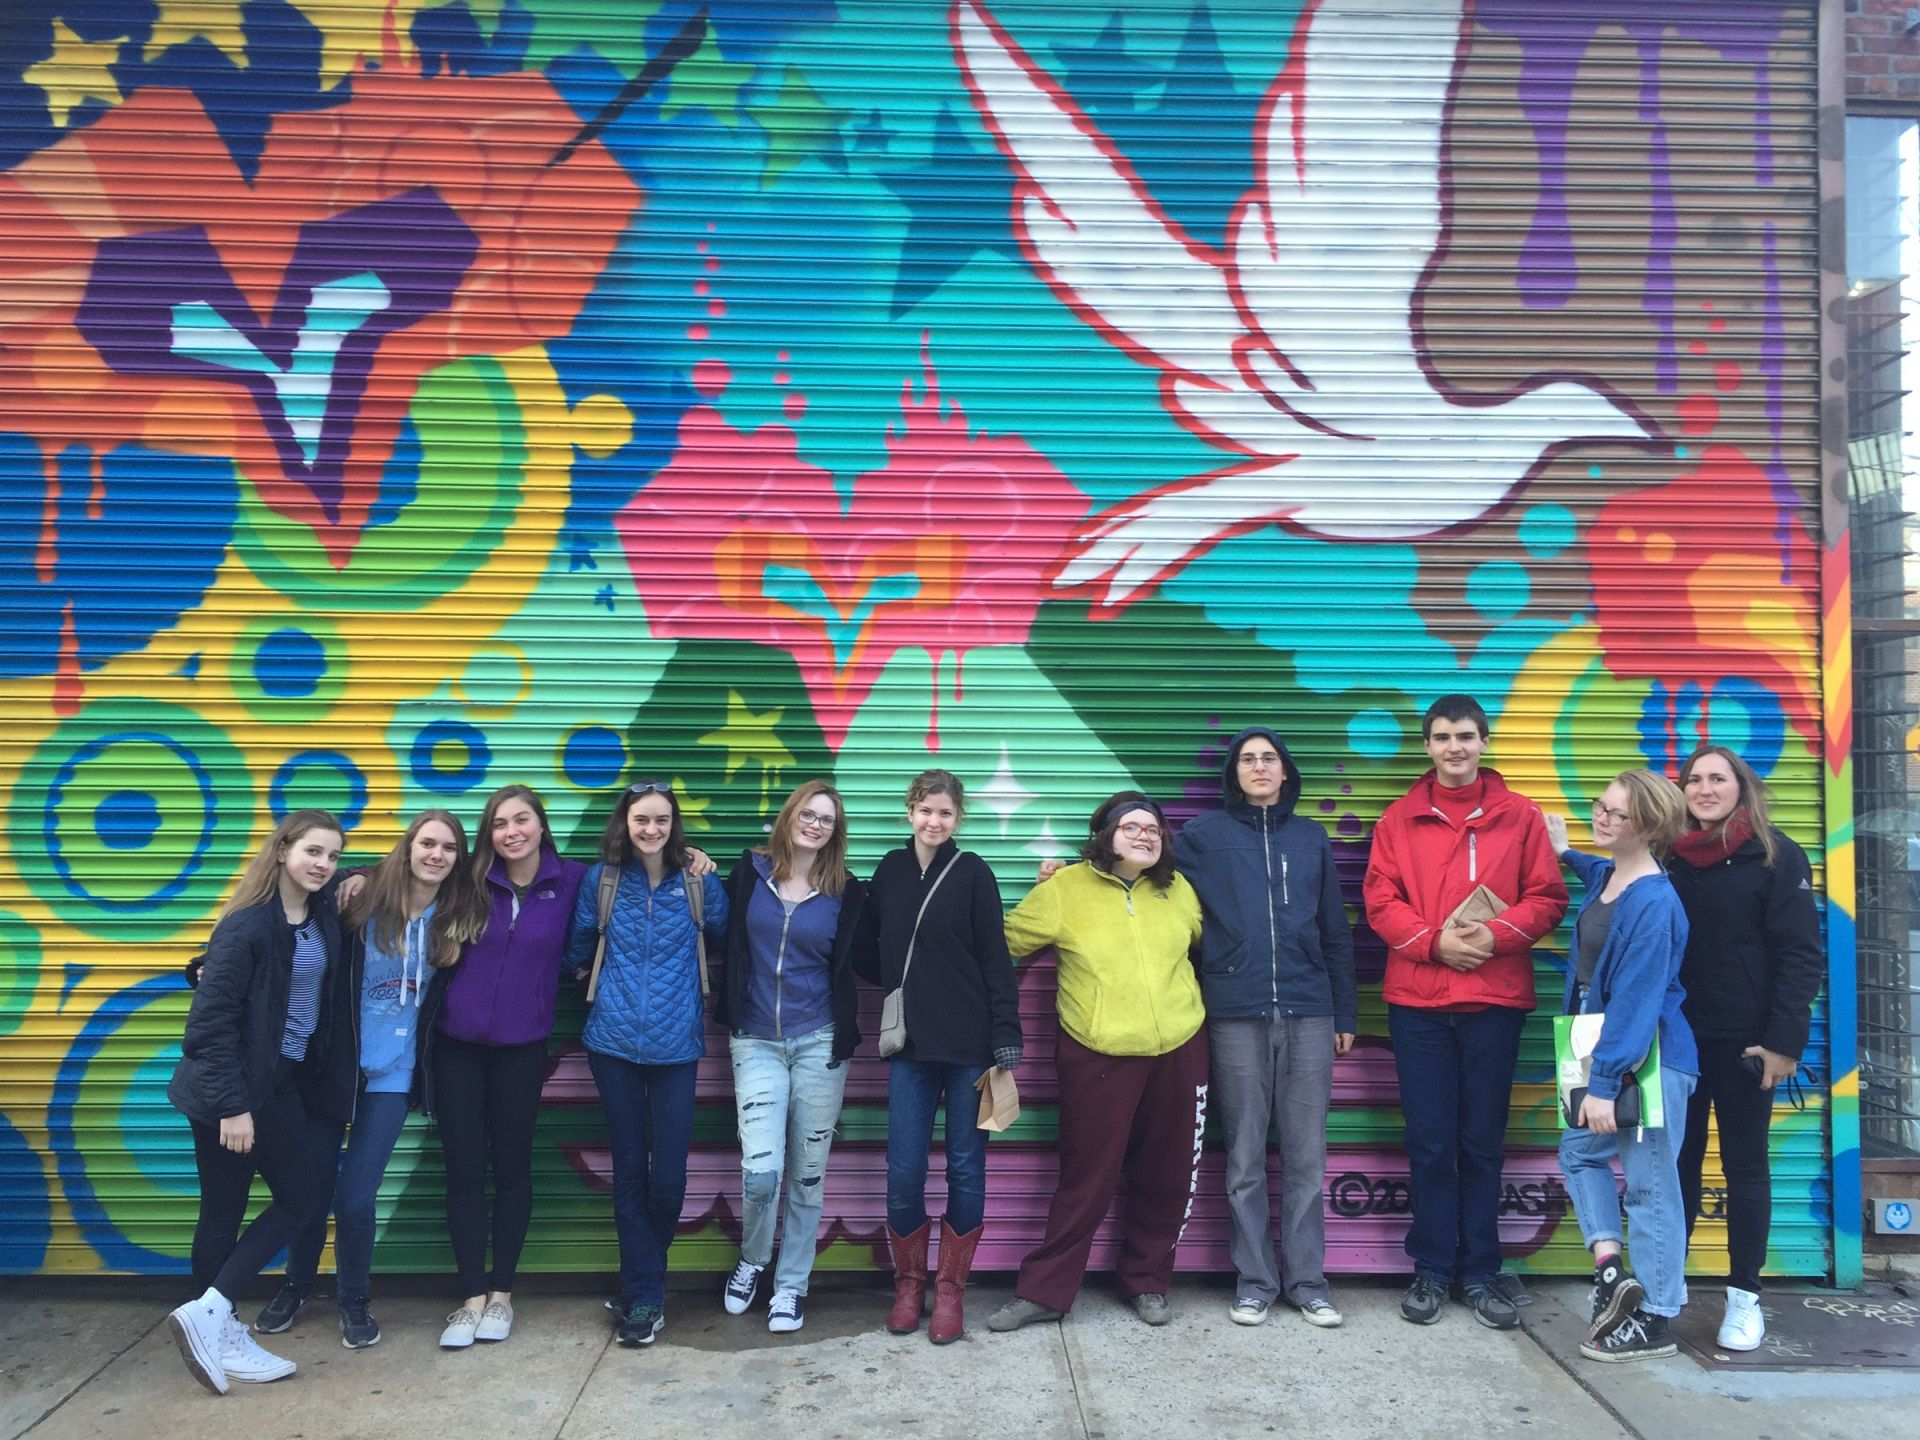 The group stands in front of street art in Brooklyn, New York City, New York.